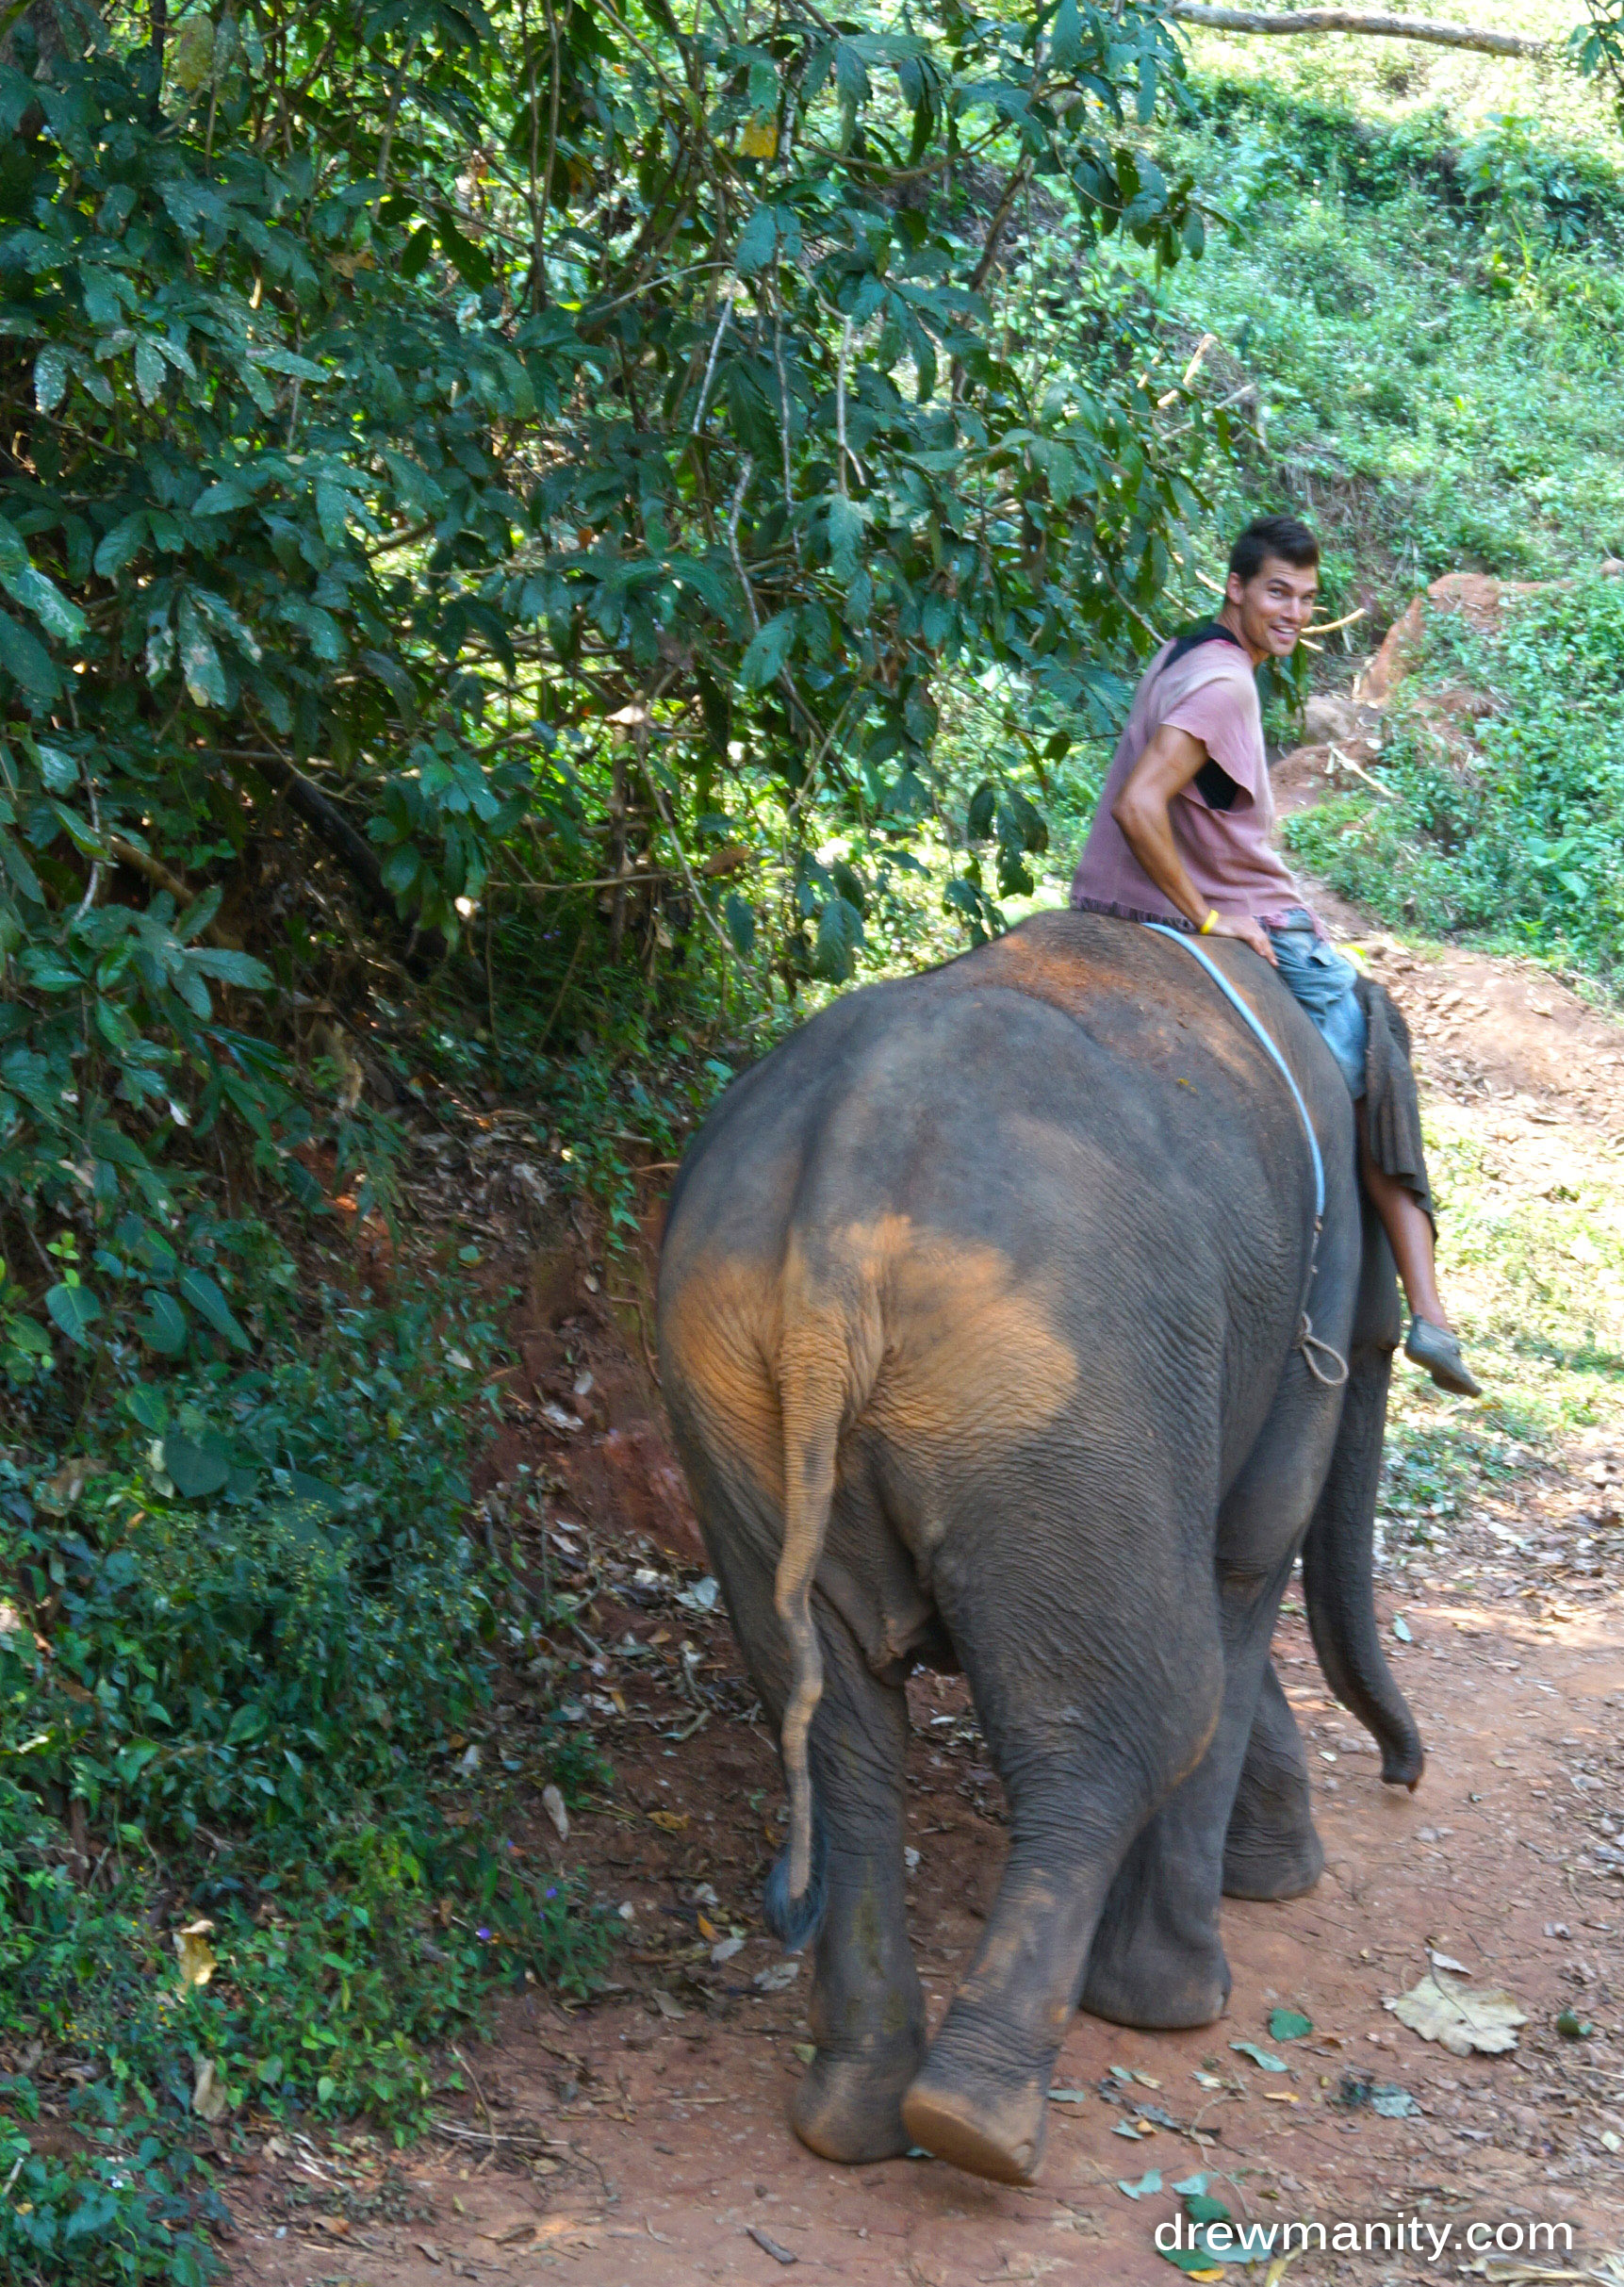 riding the elephant down hill